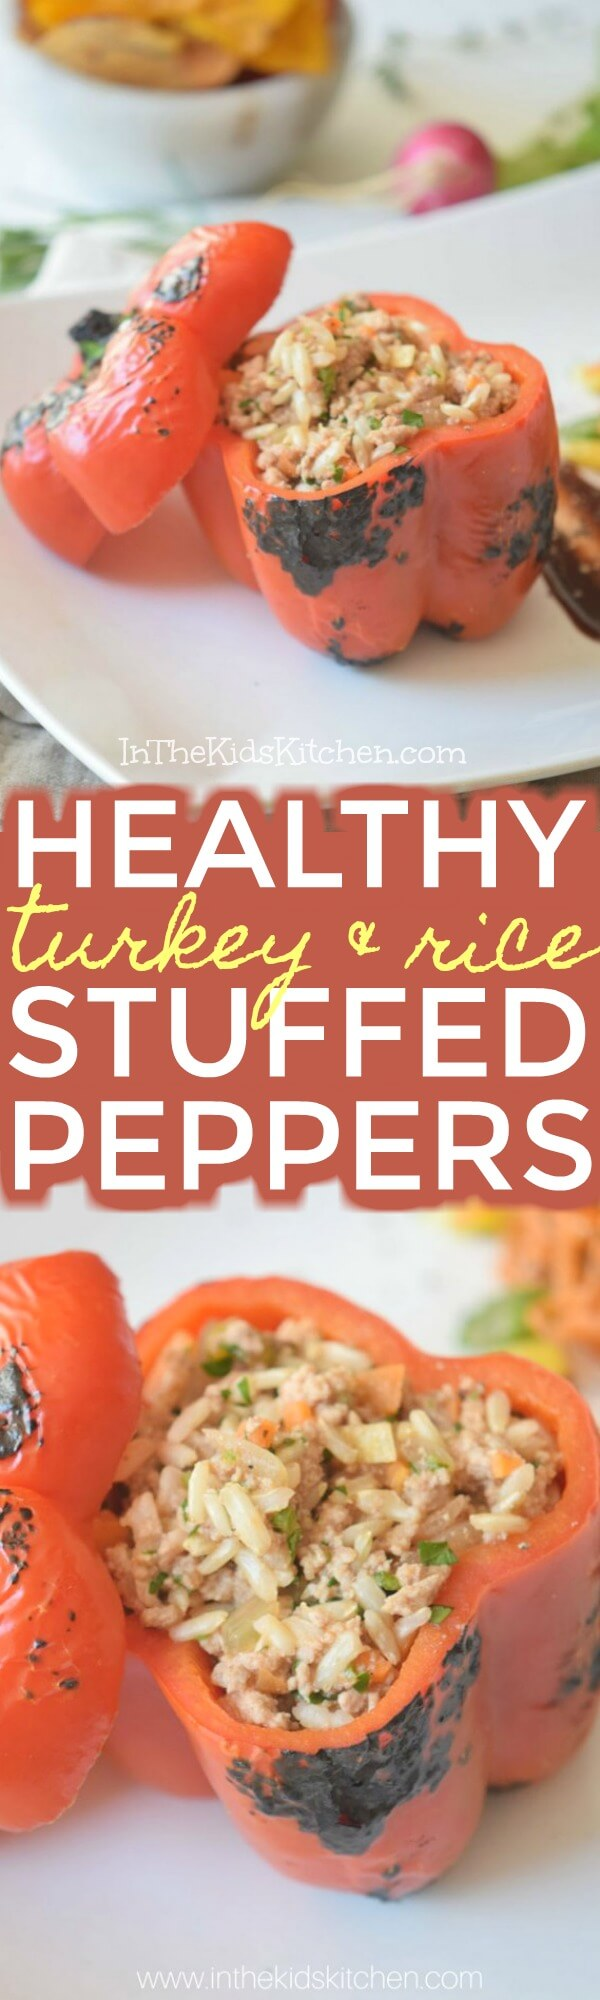 A holiday dinner wrapped up in a healthy, sweet red bell pepper - these turkey and rice stuffed peppers are a guilt-free comfort food indulgence!